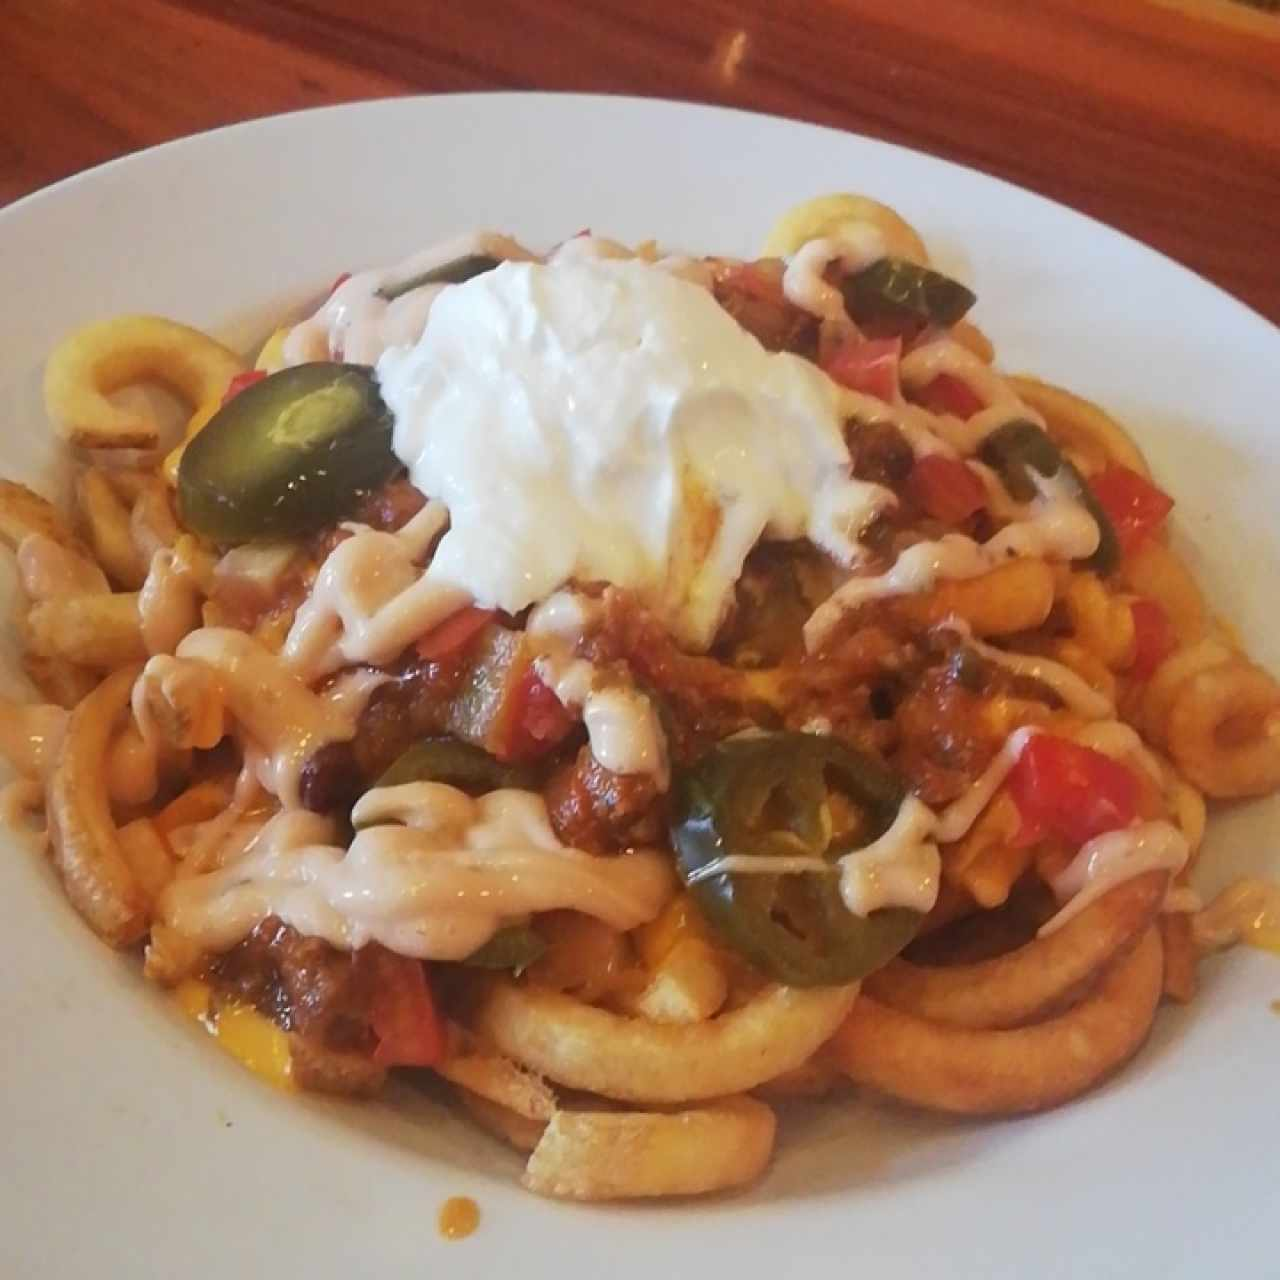 Big dipper chili cheese fries